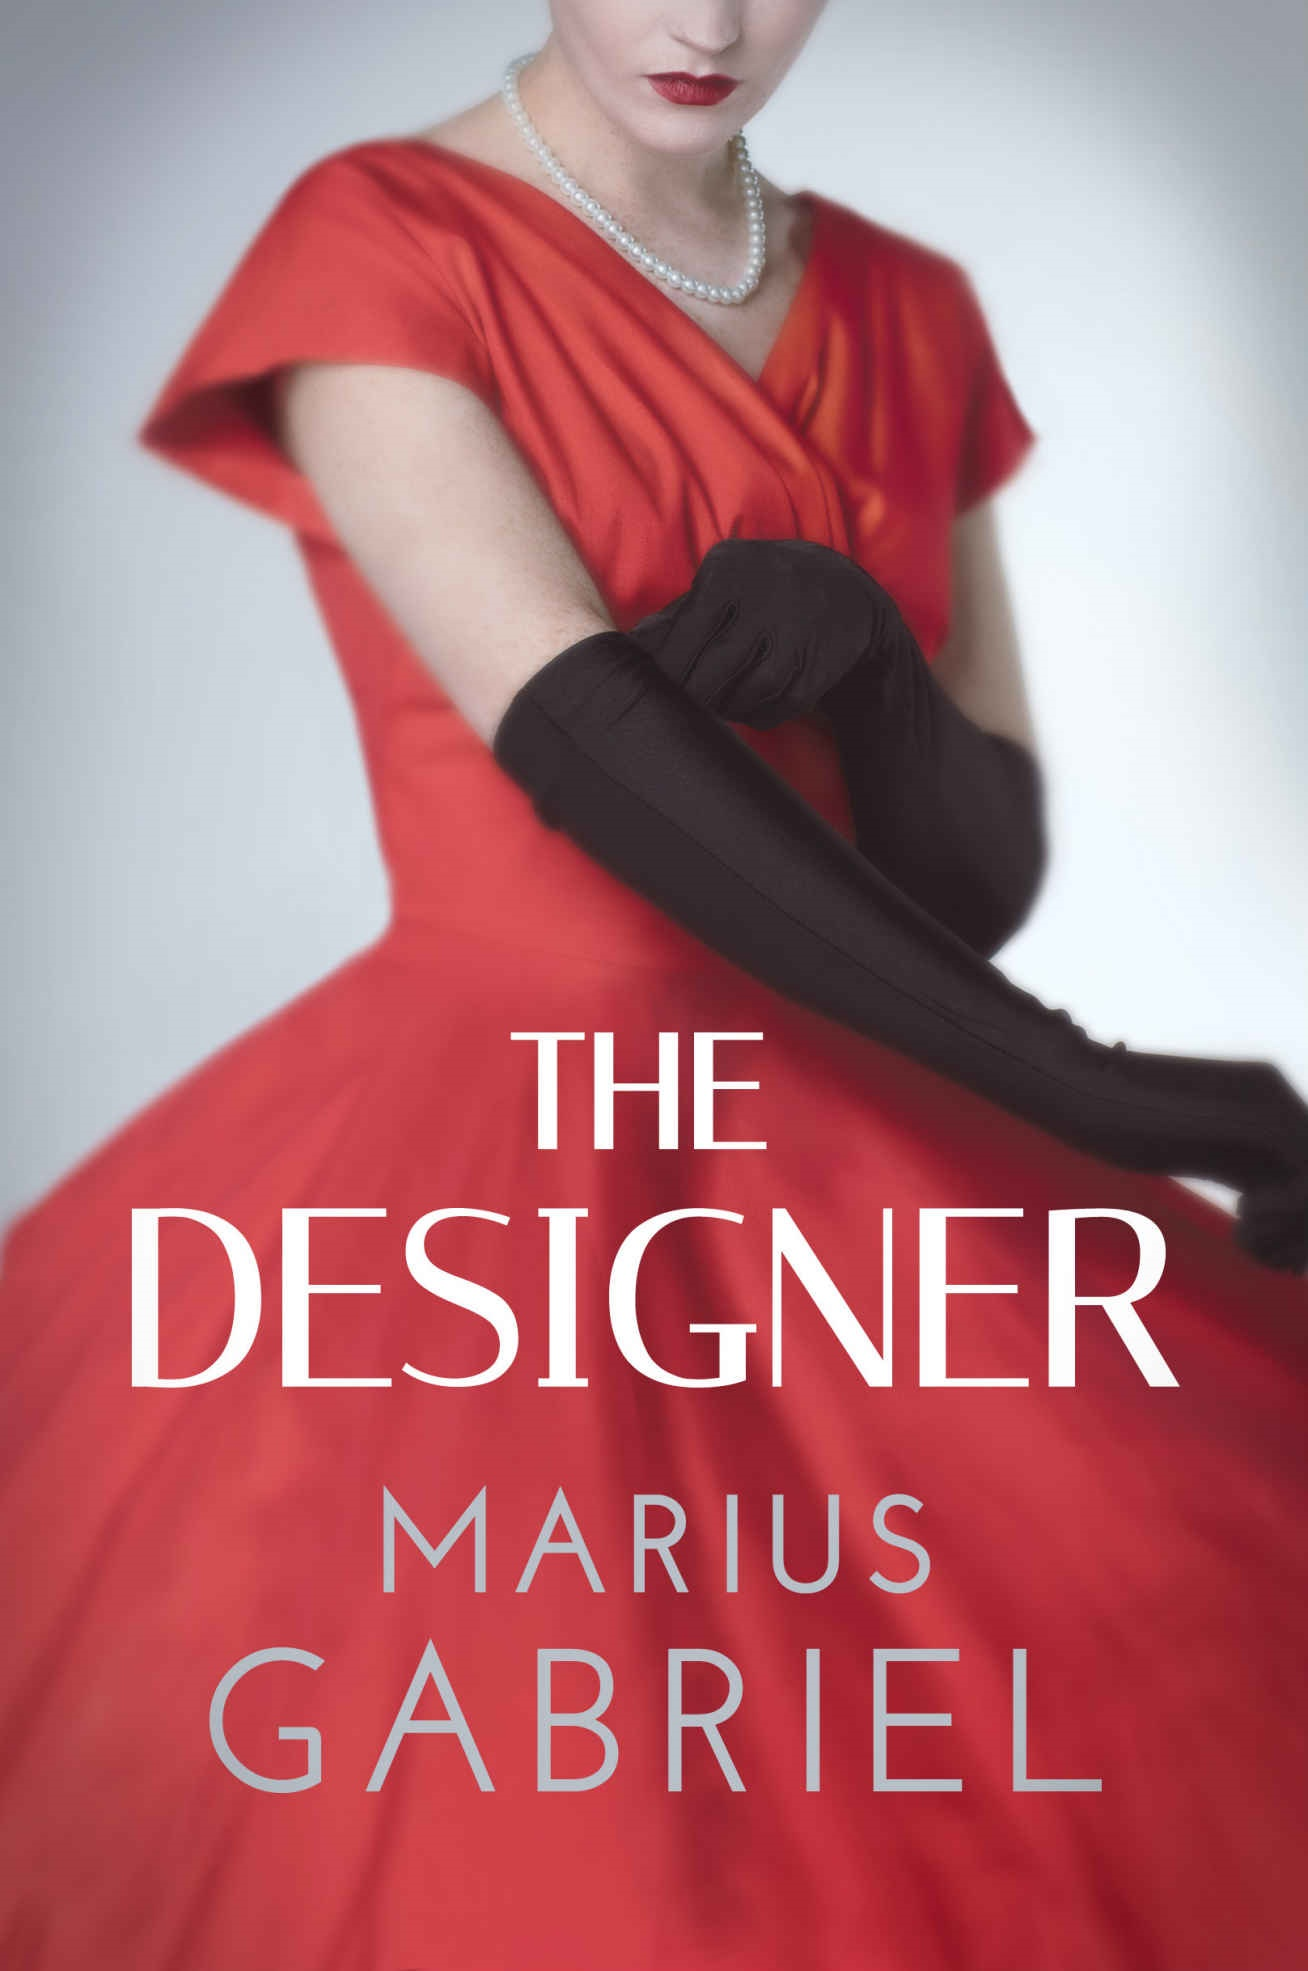 The Designer - Marius Gabriel [kindle] [mobi]